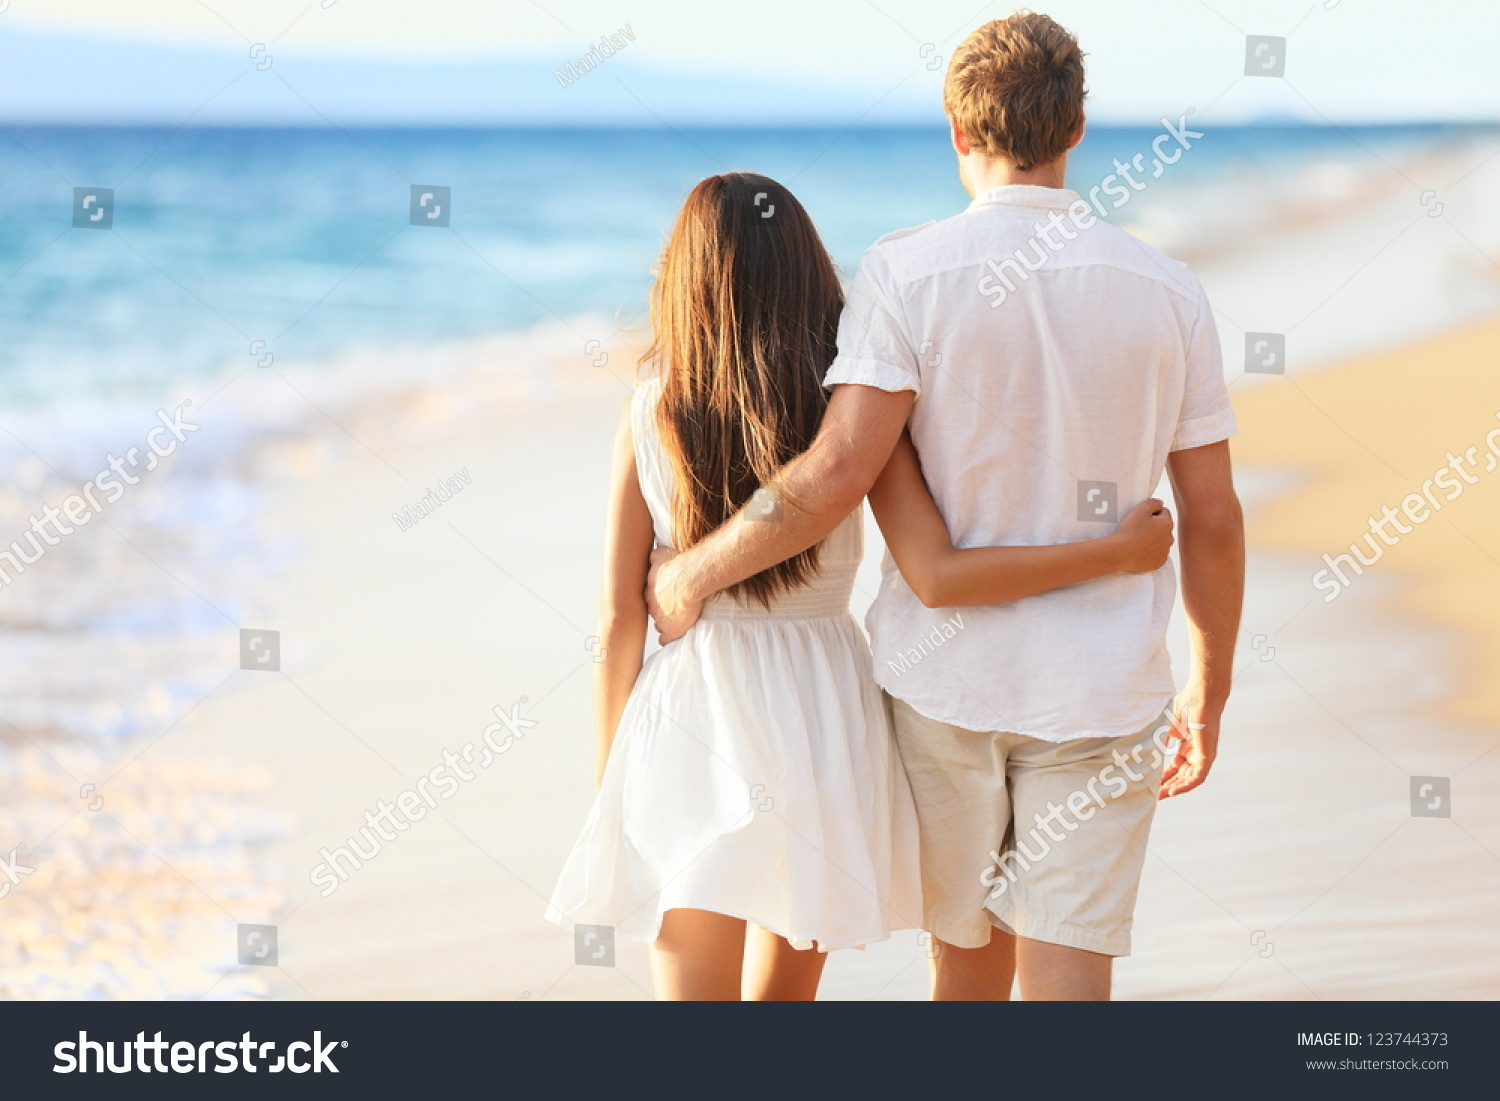 beach lake dating These are just some of the different kinds of meetup groups you can find near delray beach sign me up let's meetup all meetups  florida educated singles 50 .